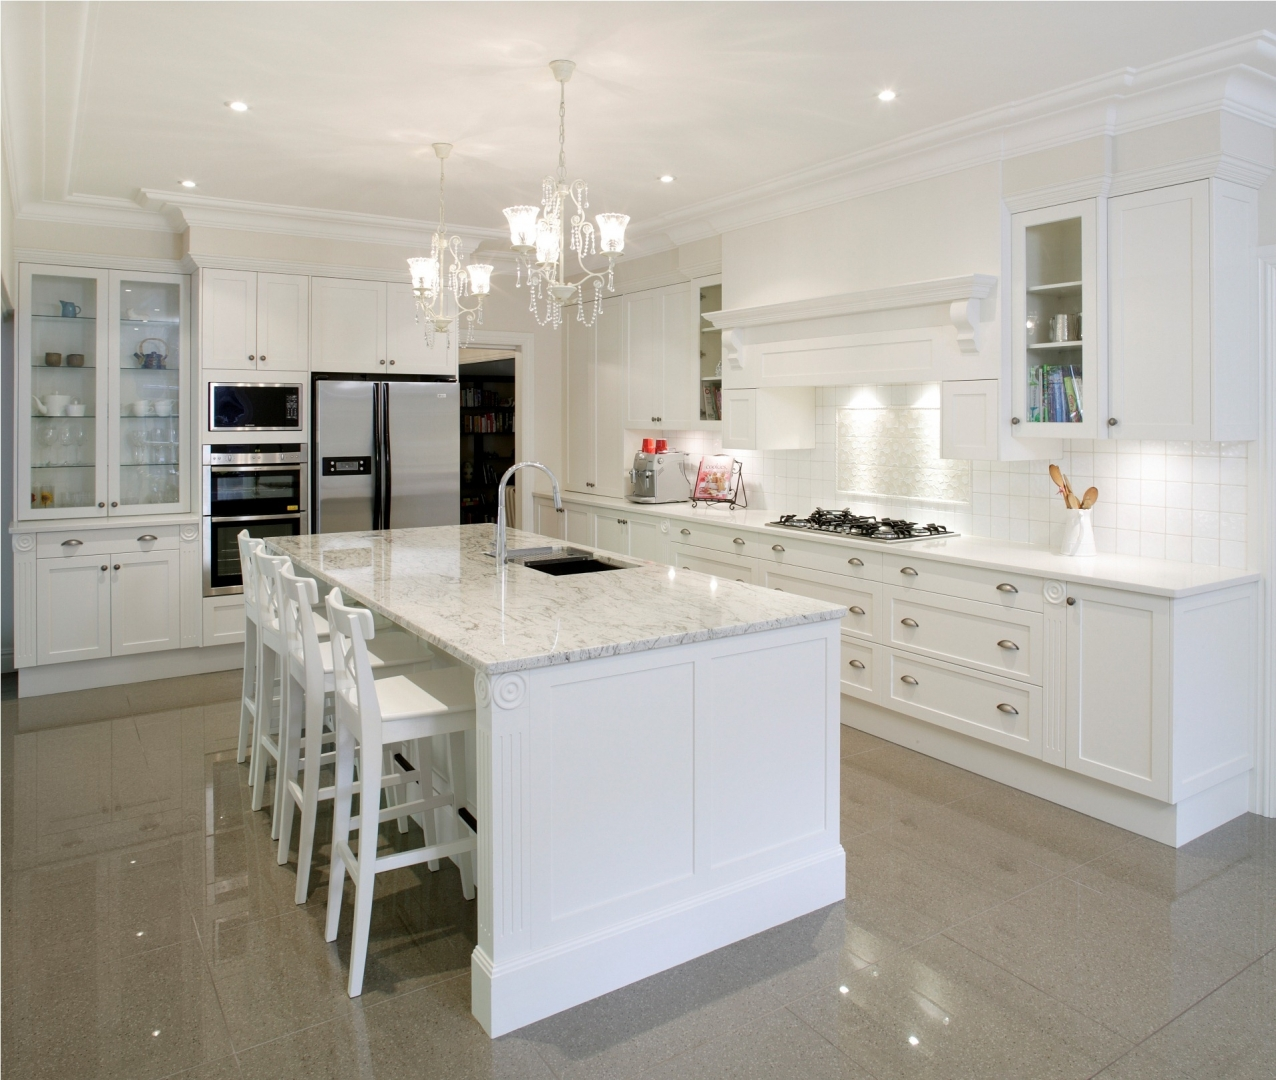 White Kitchens All White Kitchens Is This Trend Here To Stay Modernize